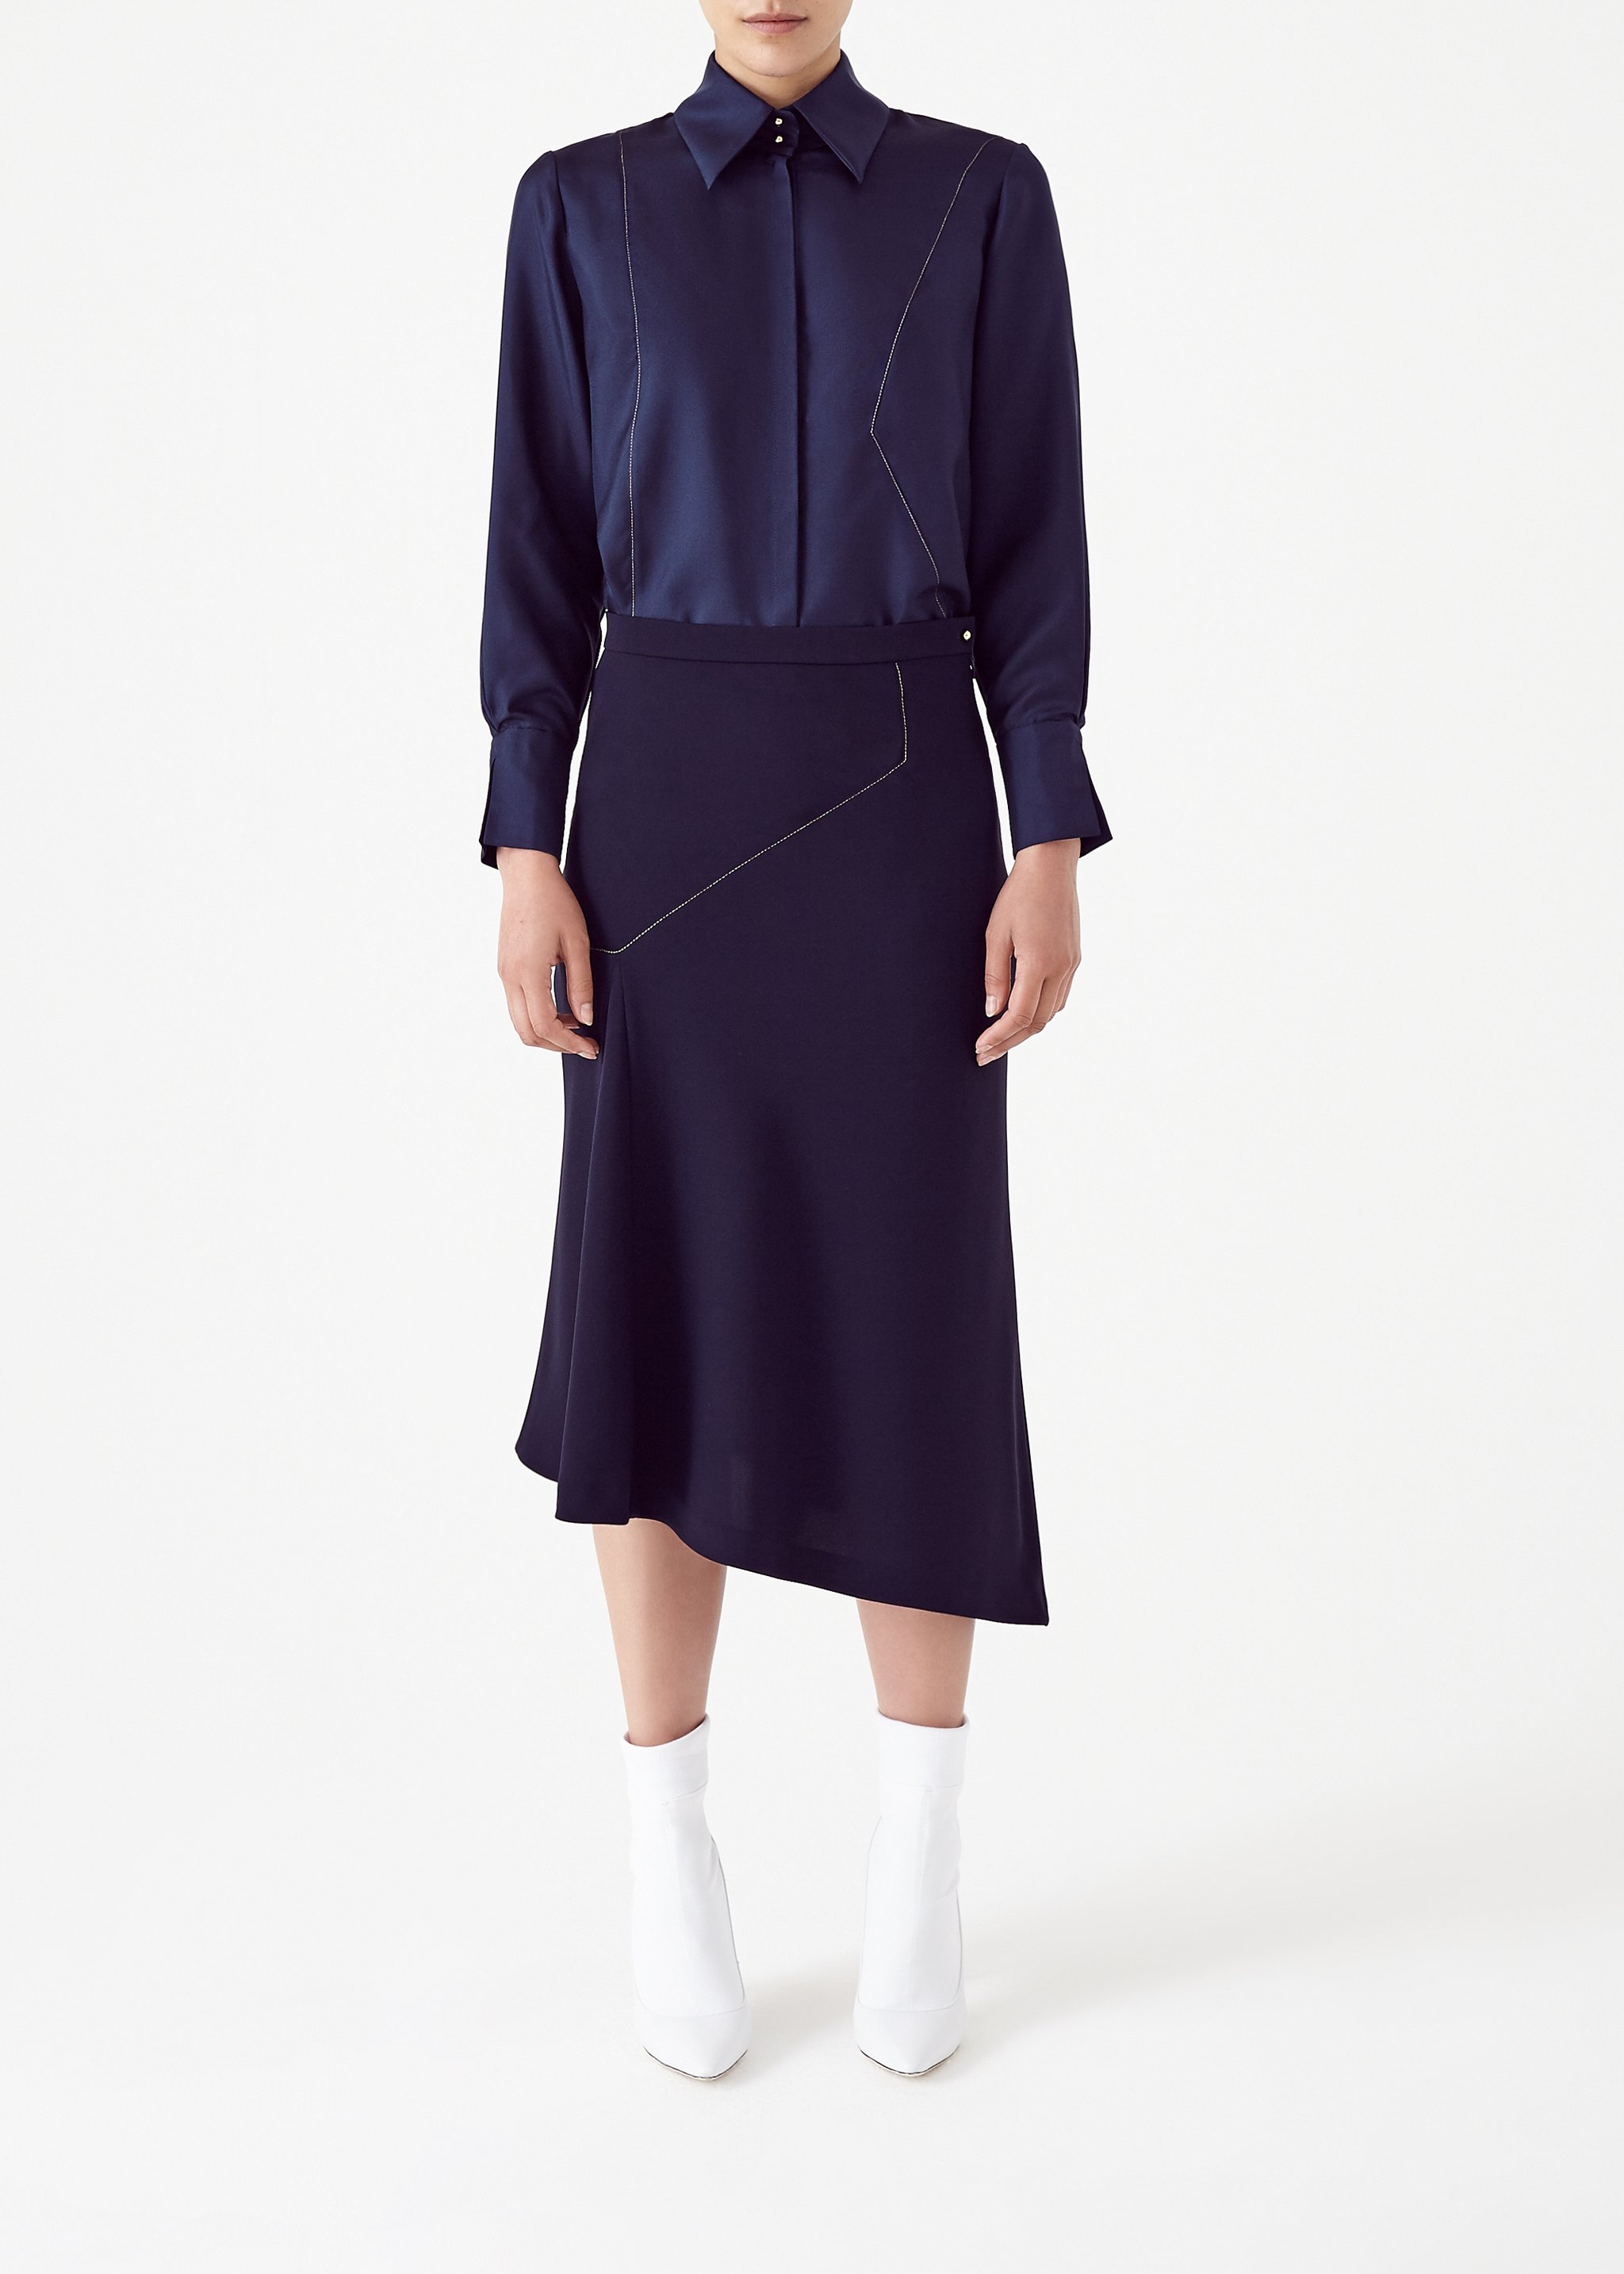 Lucinda Skirt by Bozena Jankowska on curated-crowd.com